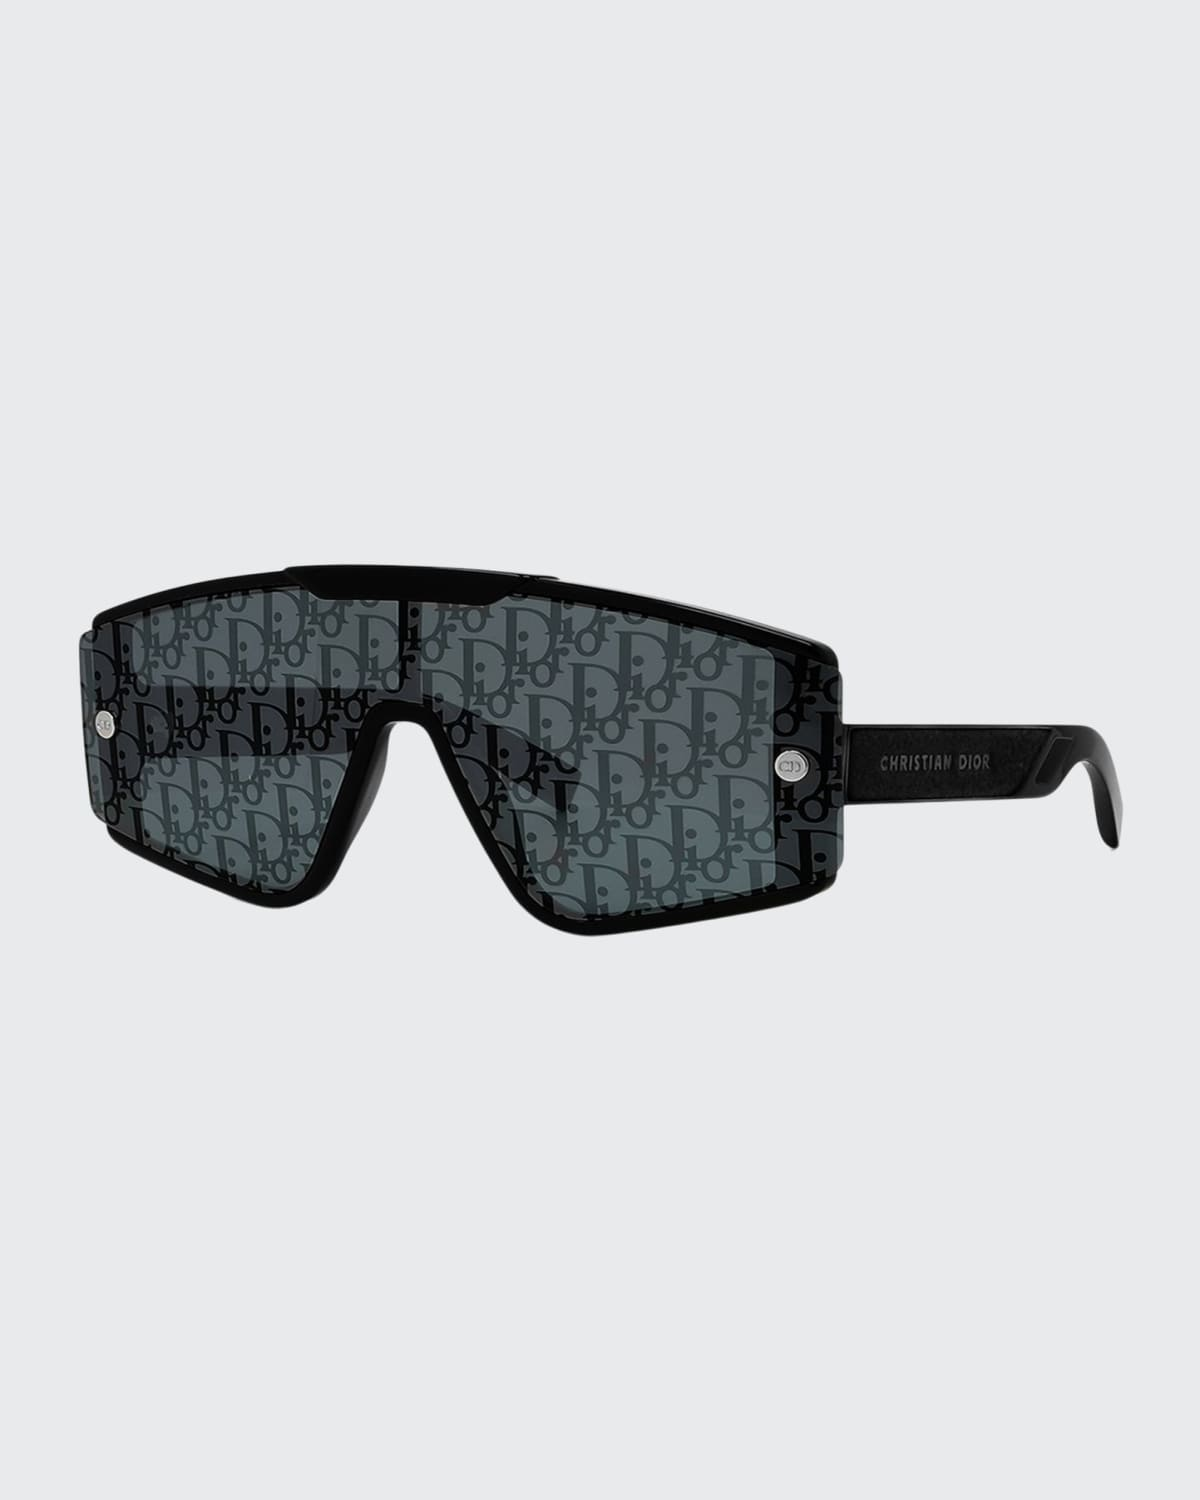 xtrem Mask Sunglasses with Interchangeable Lenses